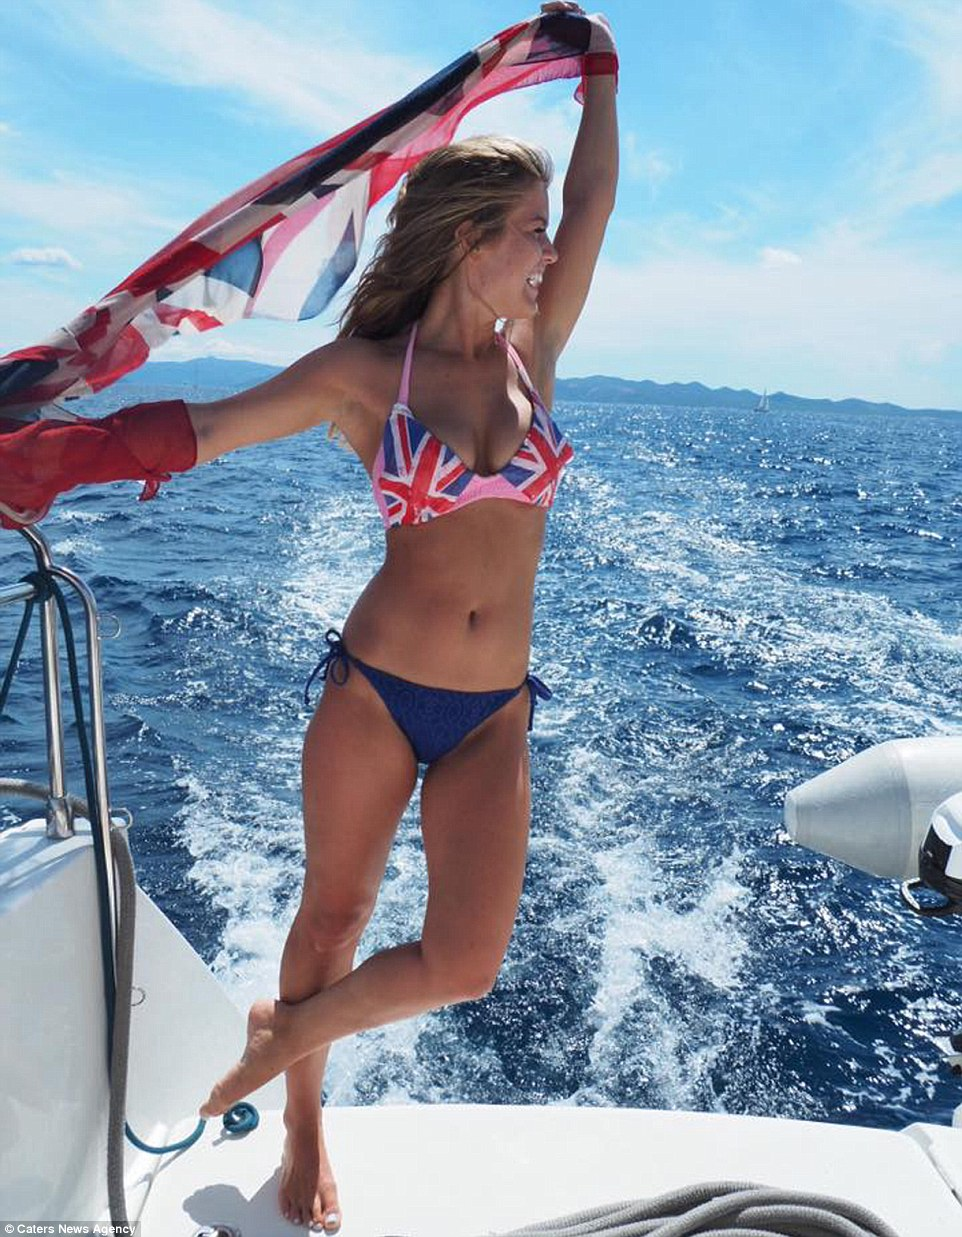 Mollie Bylett Gets Paid To Travel The World For GoPro And